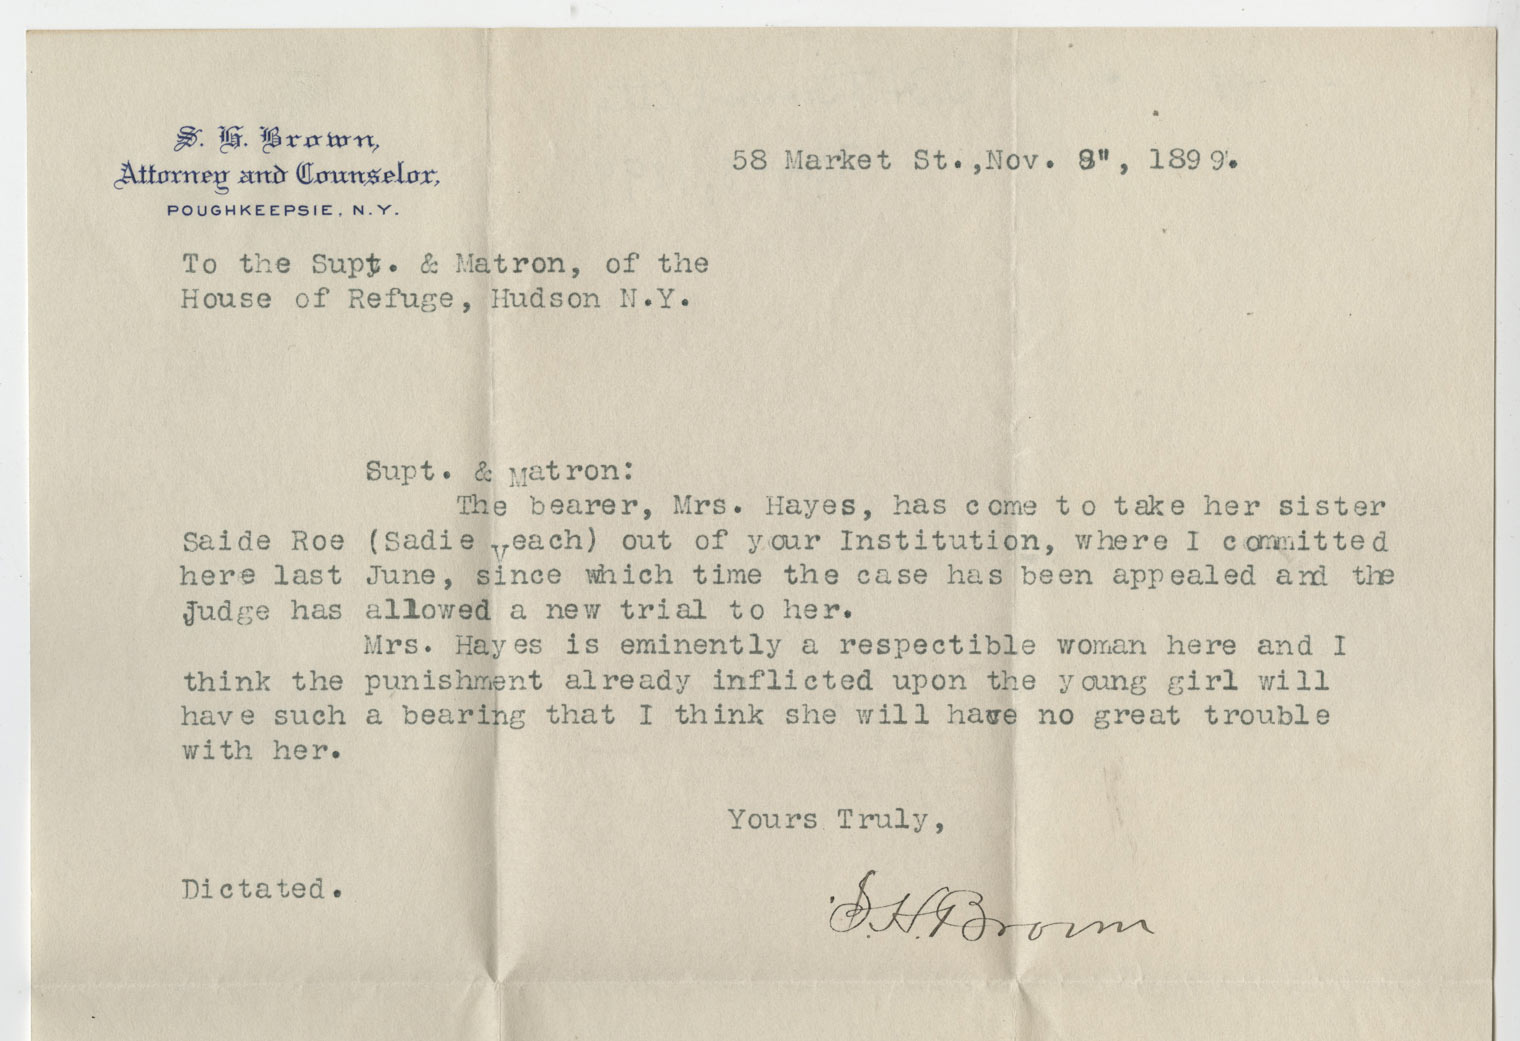 Maud Veach letter to superintendent, House of Refuge for Women, Prison Public Memory Project